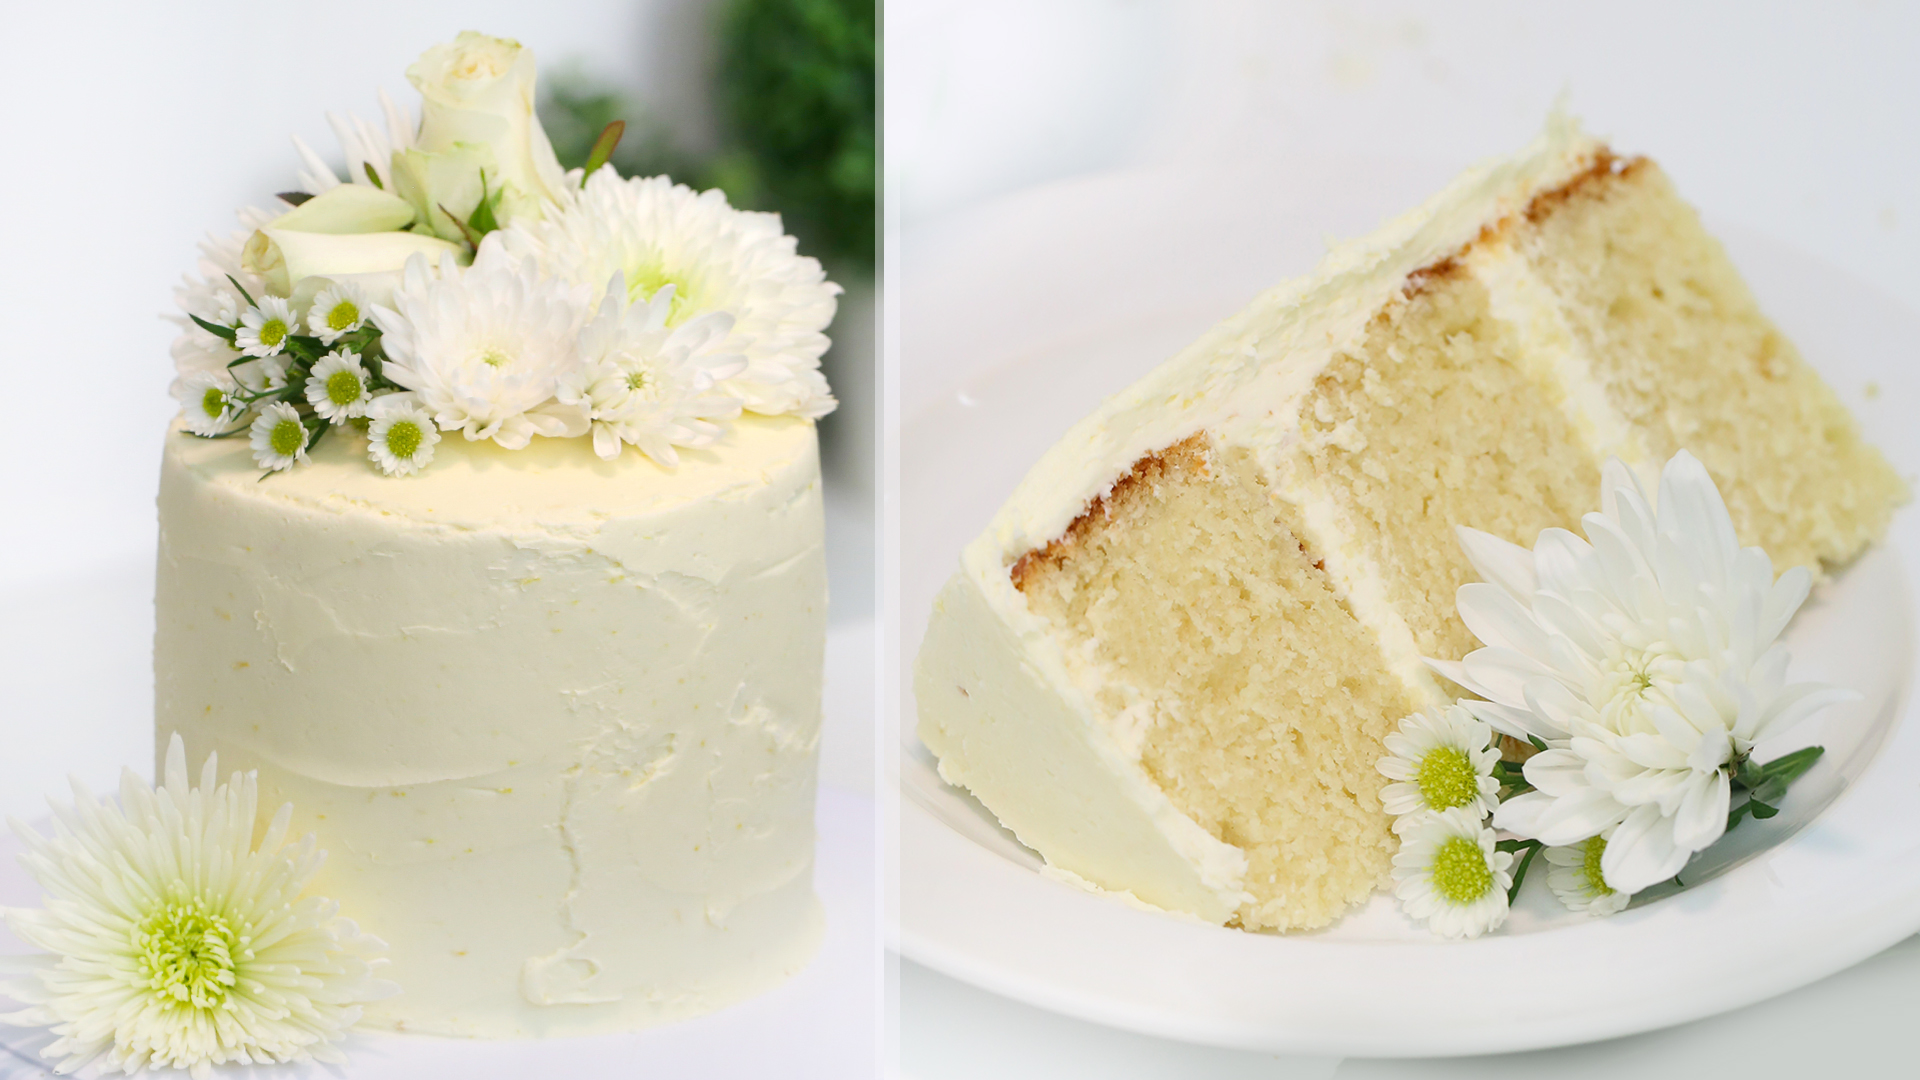 pankobunny: How to Make the ROYAL WEDDING CAKE!! Lemon Elderflower Cake